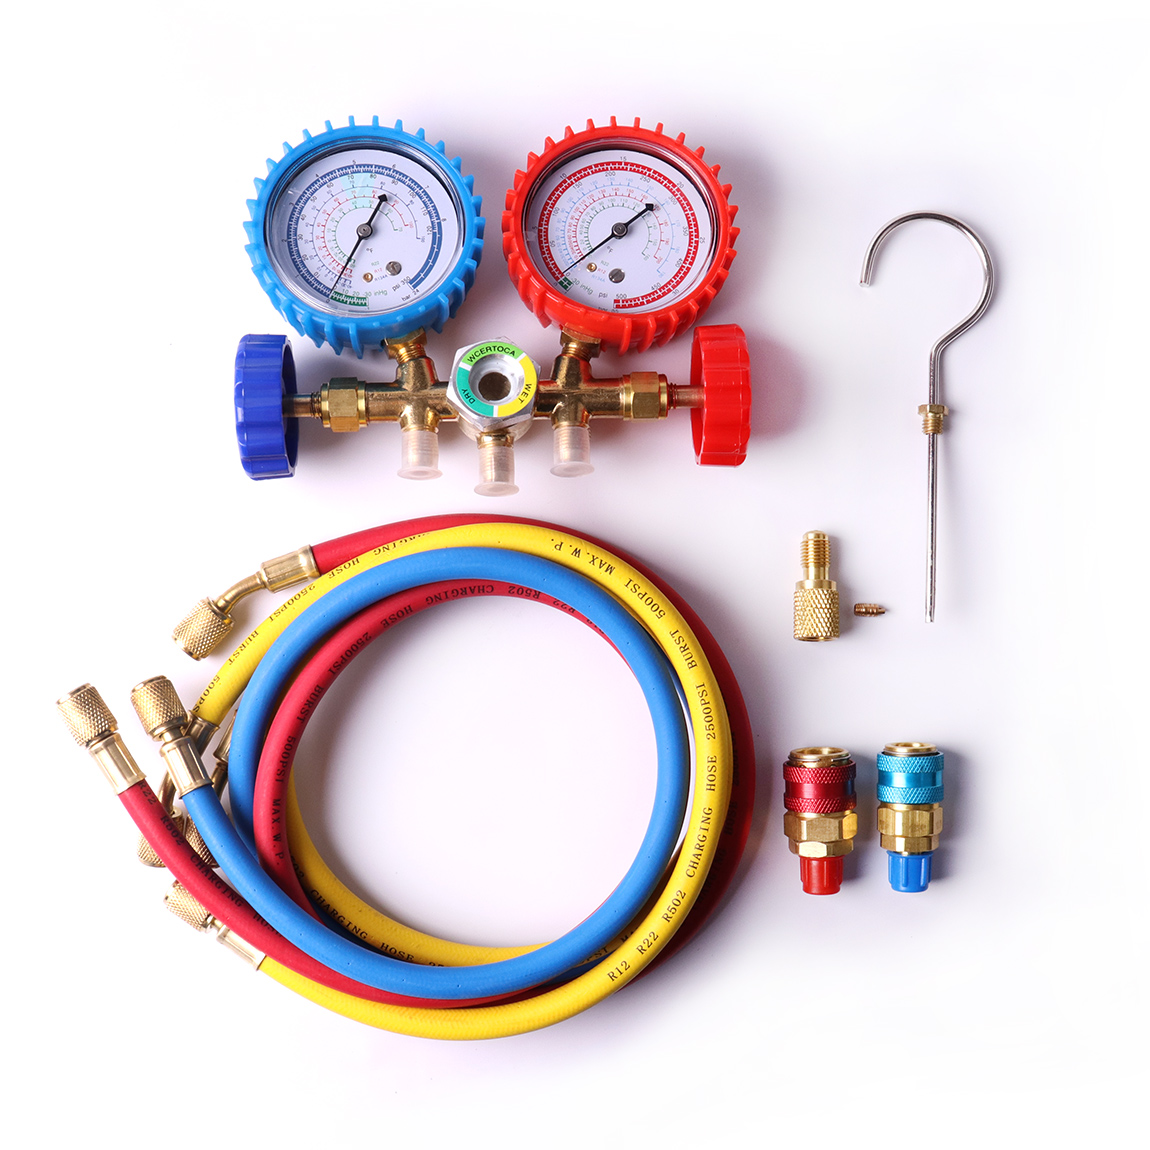 New Air Conditioning Red Blue H-L R134 Quick Couplers R12 R22 R502 and R134a A/C Manifold Brass Gauge Set with 3 Charging Hoses mini rc drone 2 in 1 transformable rc quadcopter car rtf 2 4ghz 6ch 6 axis gyro helicopter multi functional outdoor toys